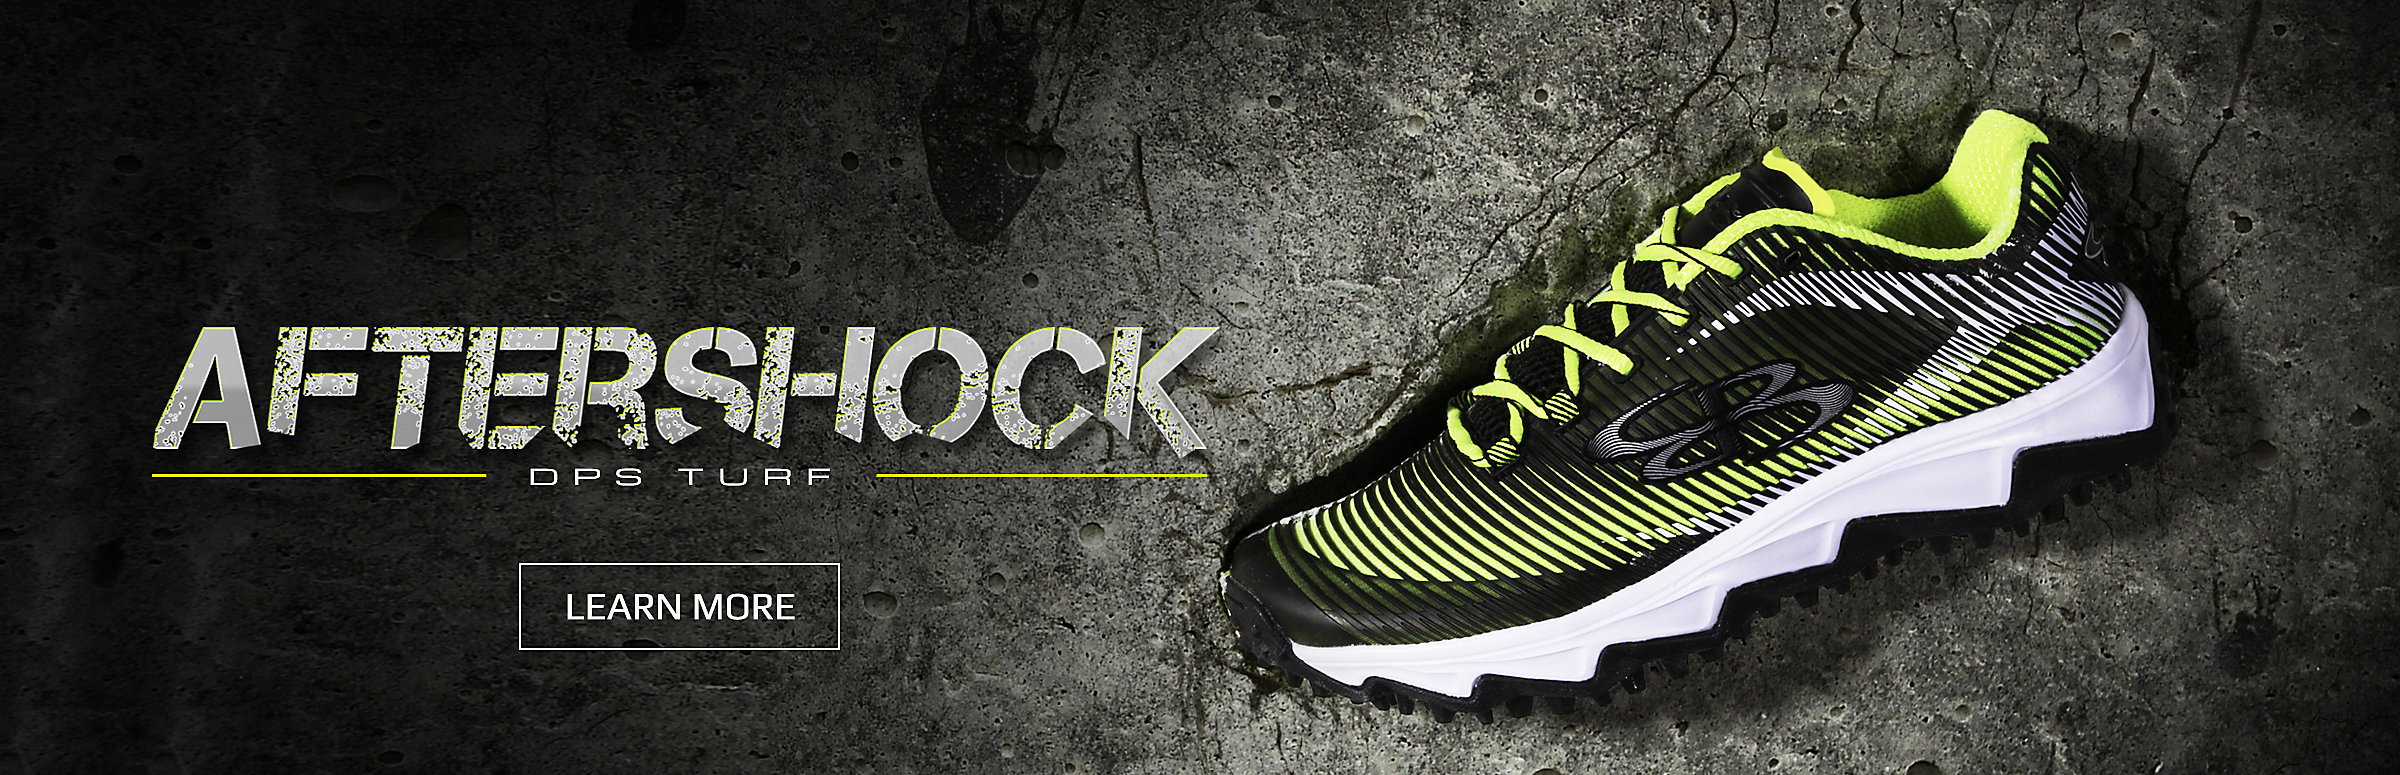 aftershock turf shoes